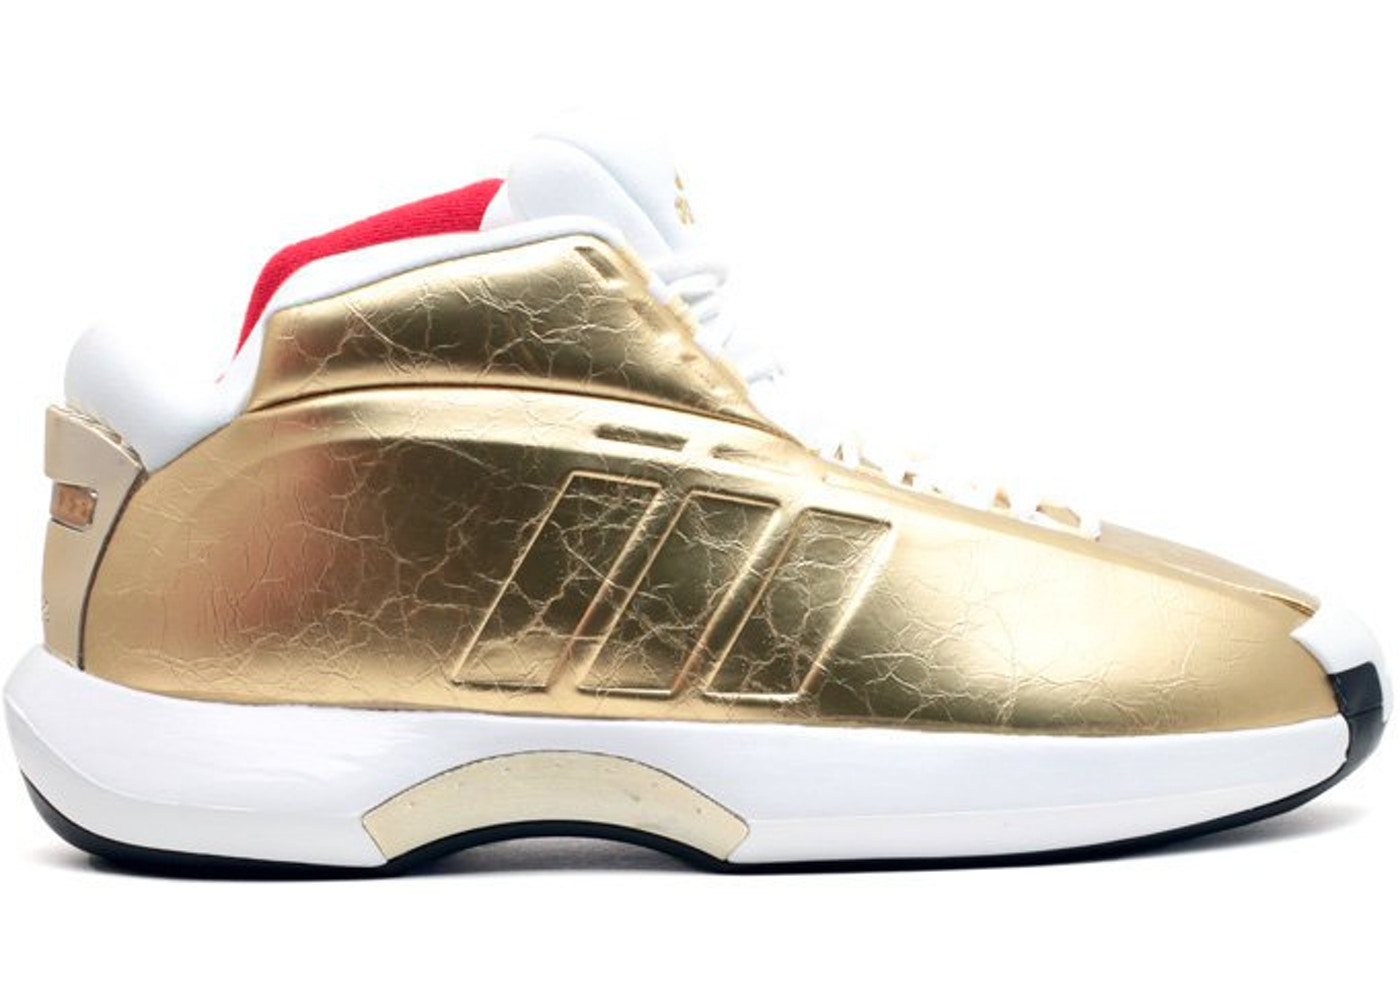 new styles 44ebe 892d4 Sell. or Ask. Size 12. View All Bids. adidas Crazy 1 Packer Shoes